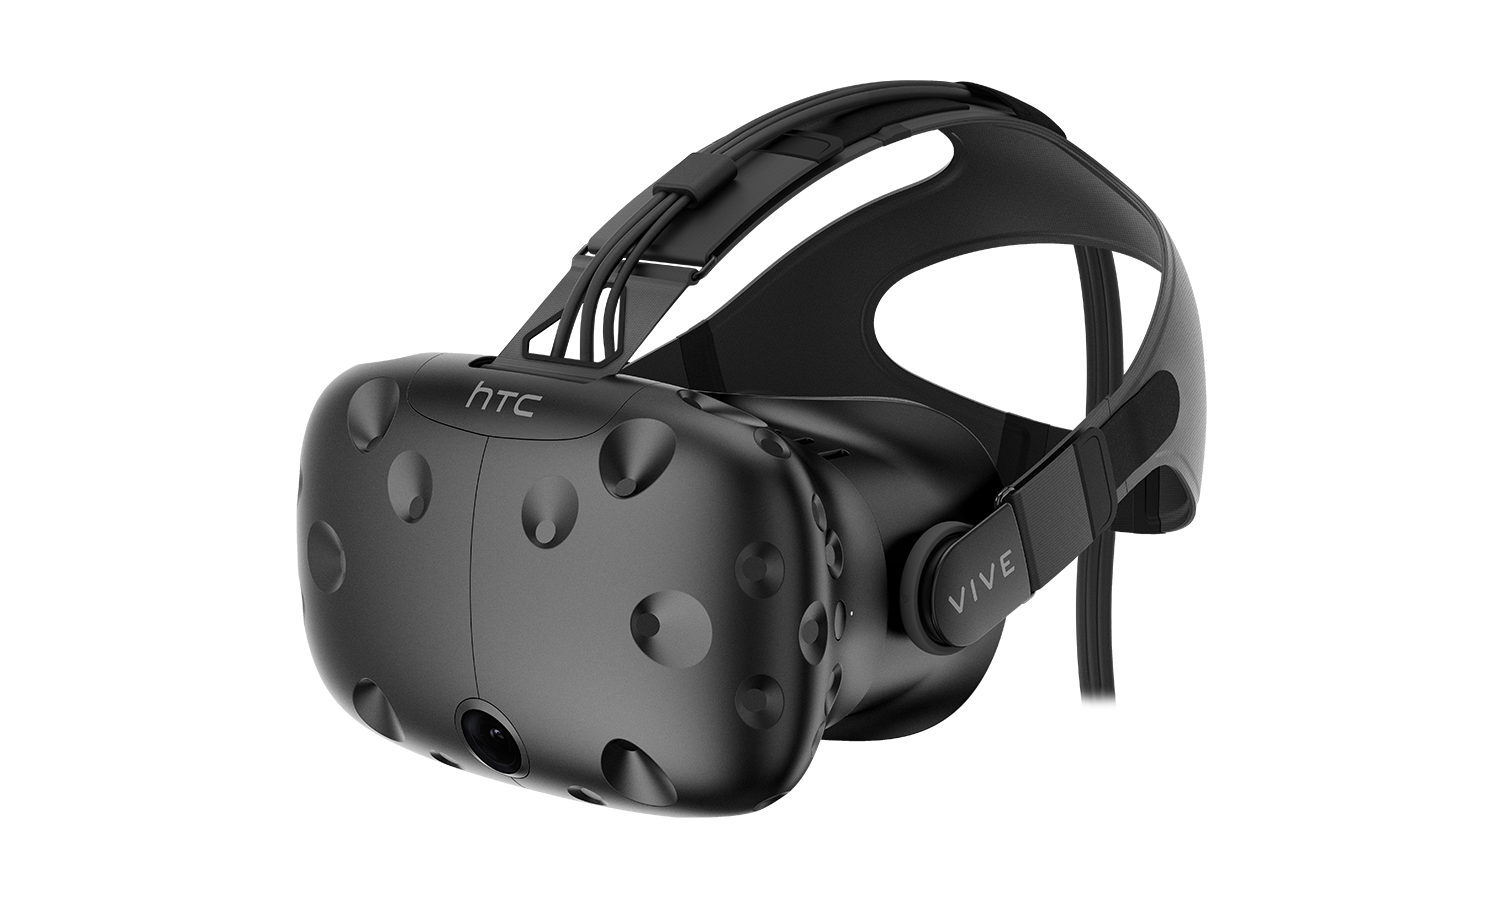 The Htc Vive Is Available For Pre Order Now Road To Vr Virtual Reality Technology Virtual Reality Headset Vr Headset